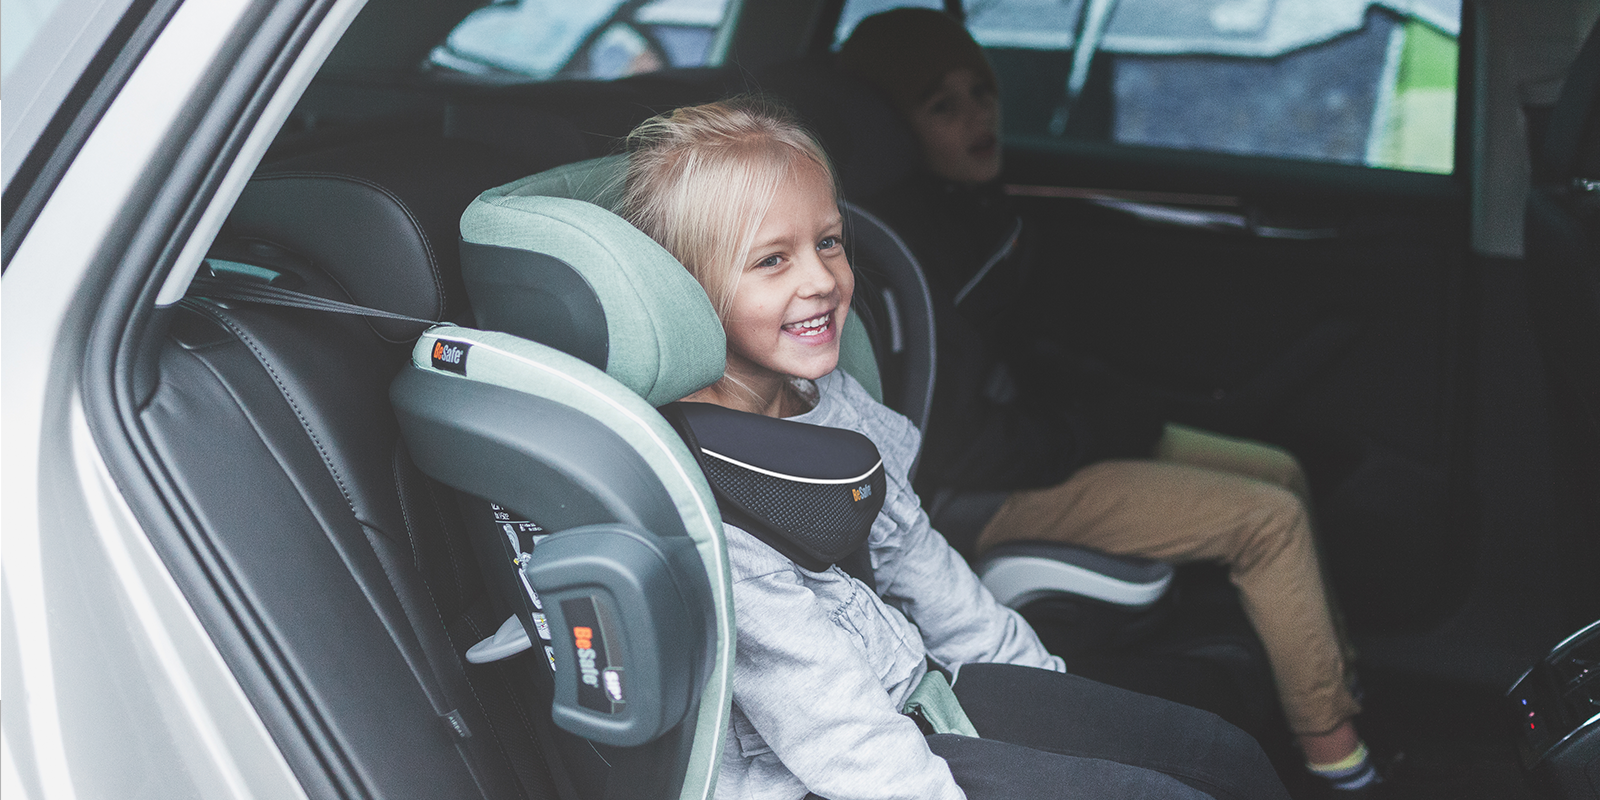 The Second Phase Of UN R129 Brings Some Major Changes For Children That Are Over 100 Cm Tall Compared To Previous Legislation Such Booster Seats